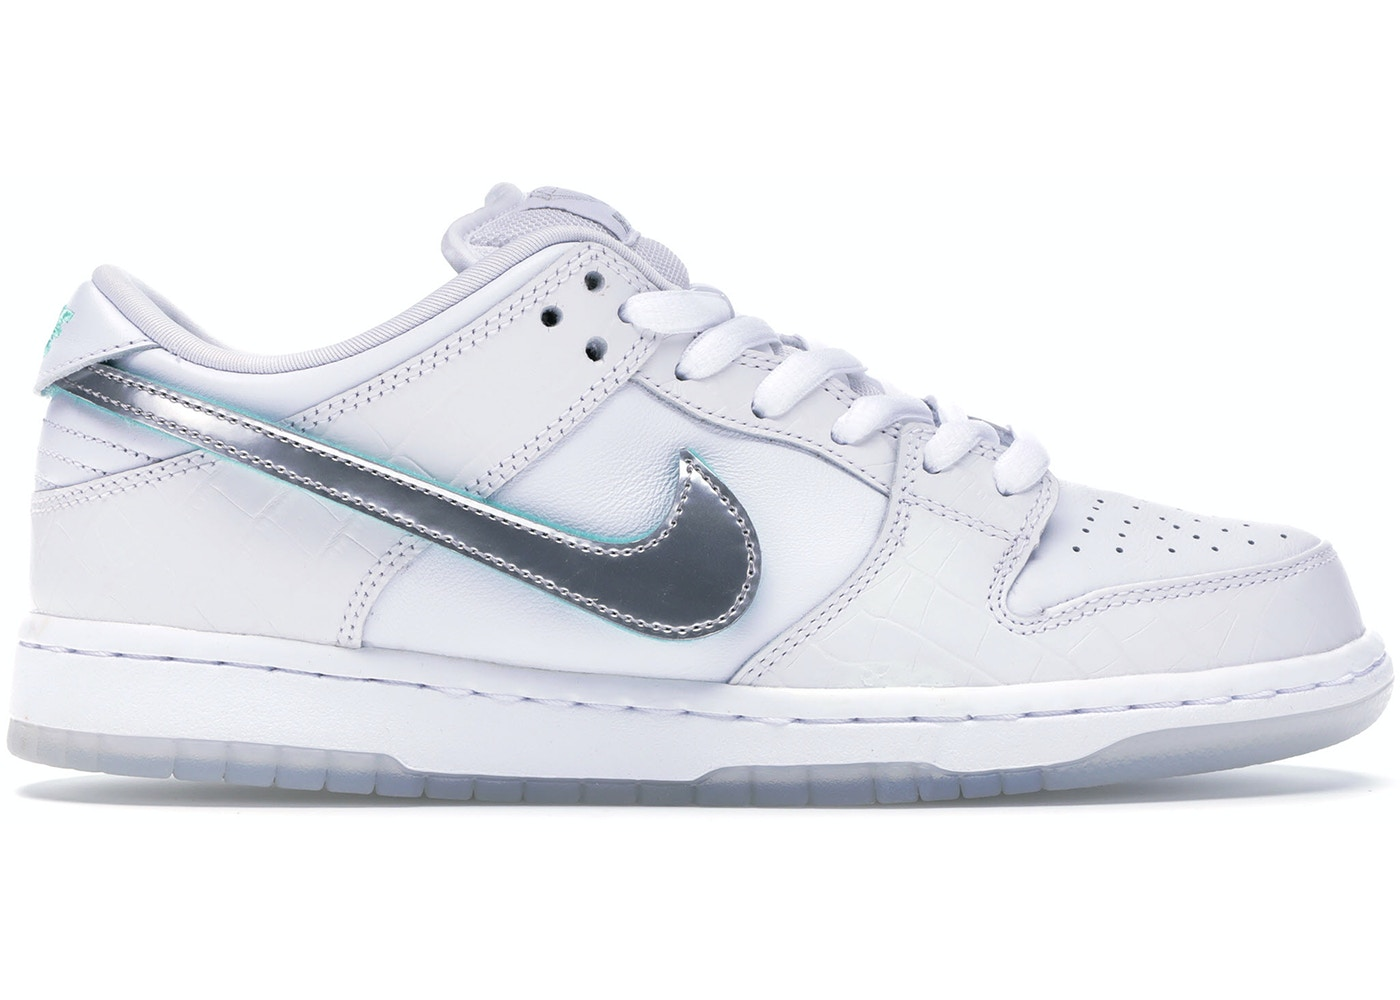 pretty nice 3696e e3229 Nike SB Dunk Low Diamond Supply Co White Diamond - BV1310-100